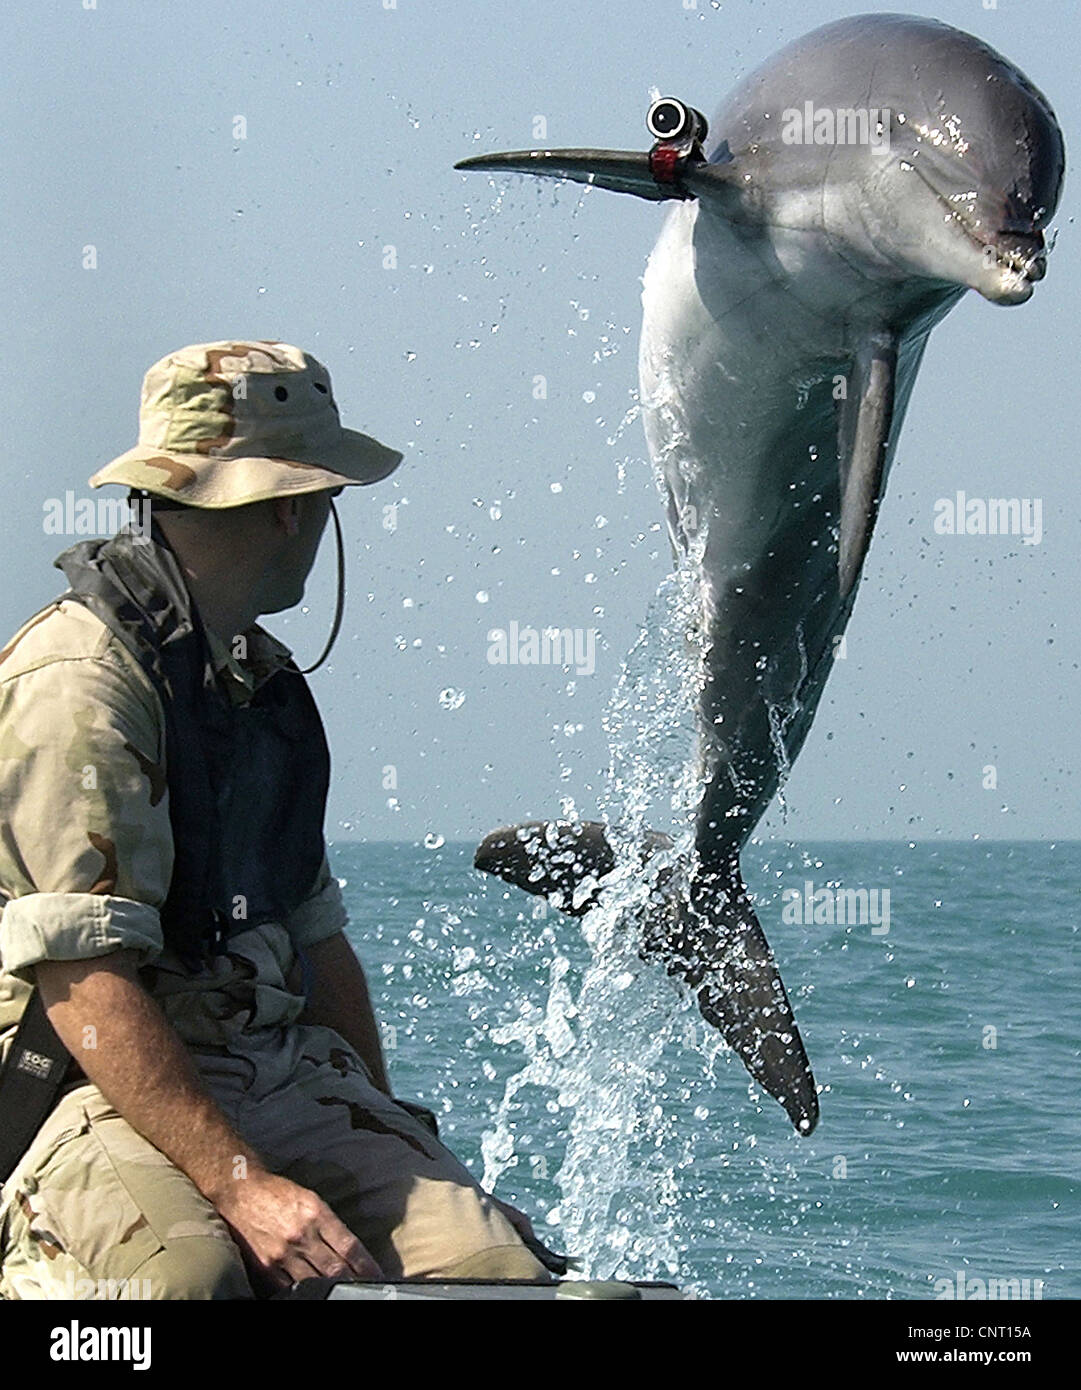 A specially trained US Navy Bottle Nose Dolphin wearing a pinger device on his fin leaps out of the water while - Stock Image